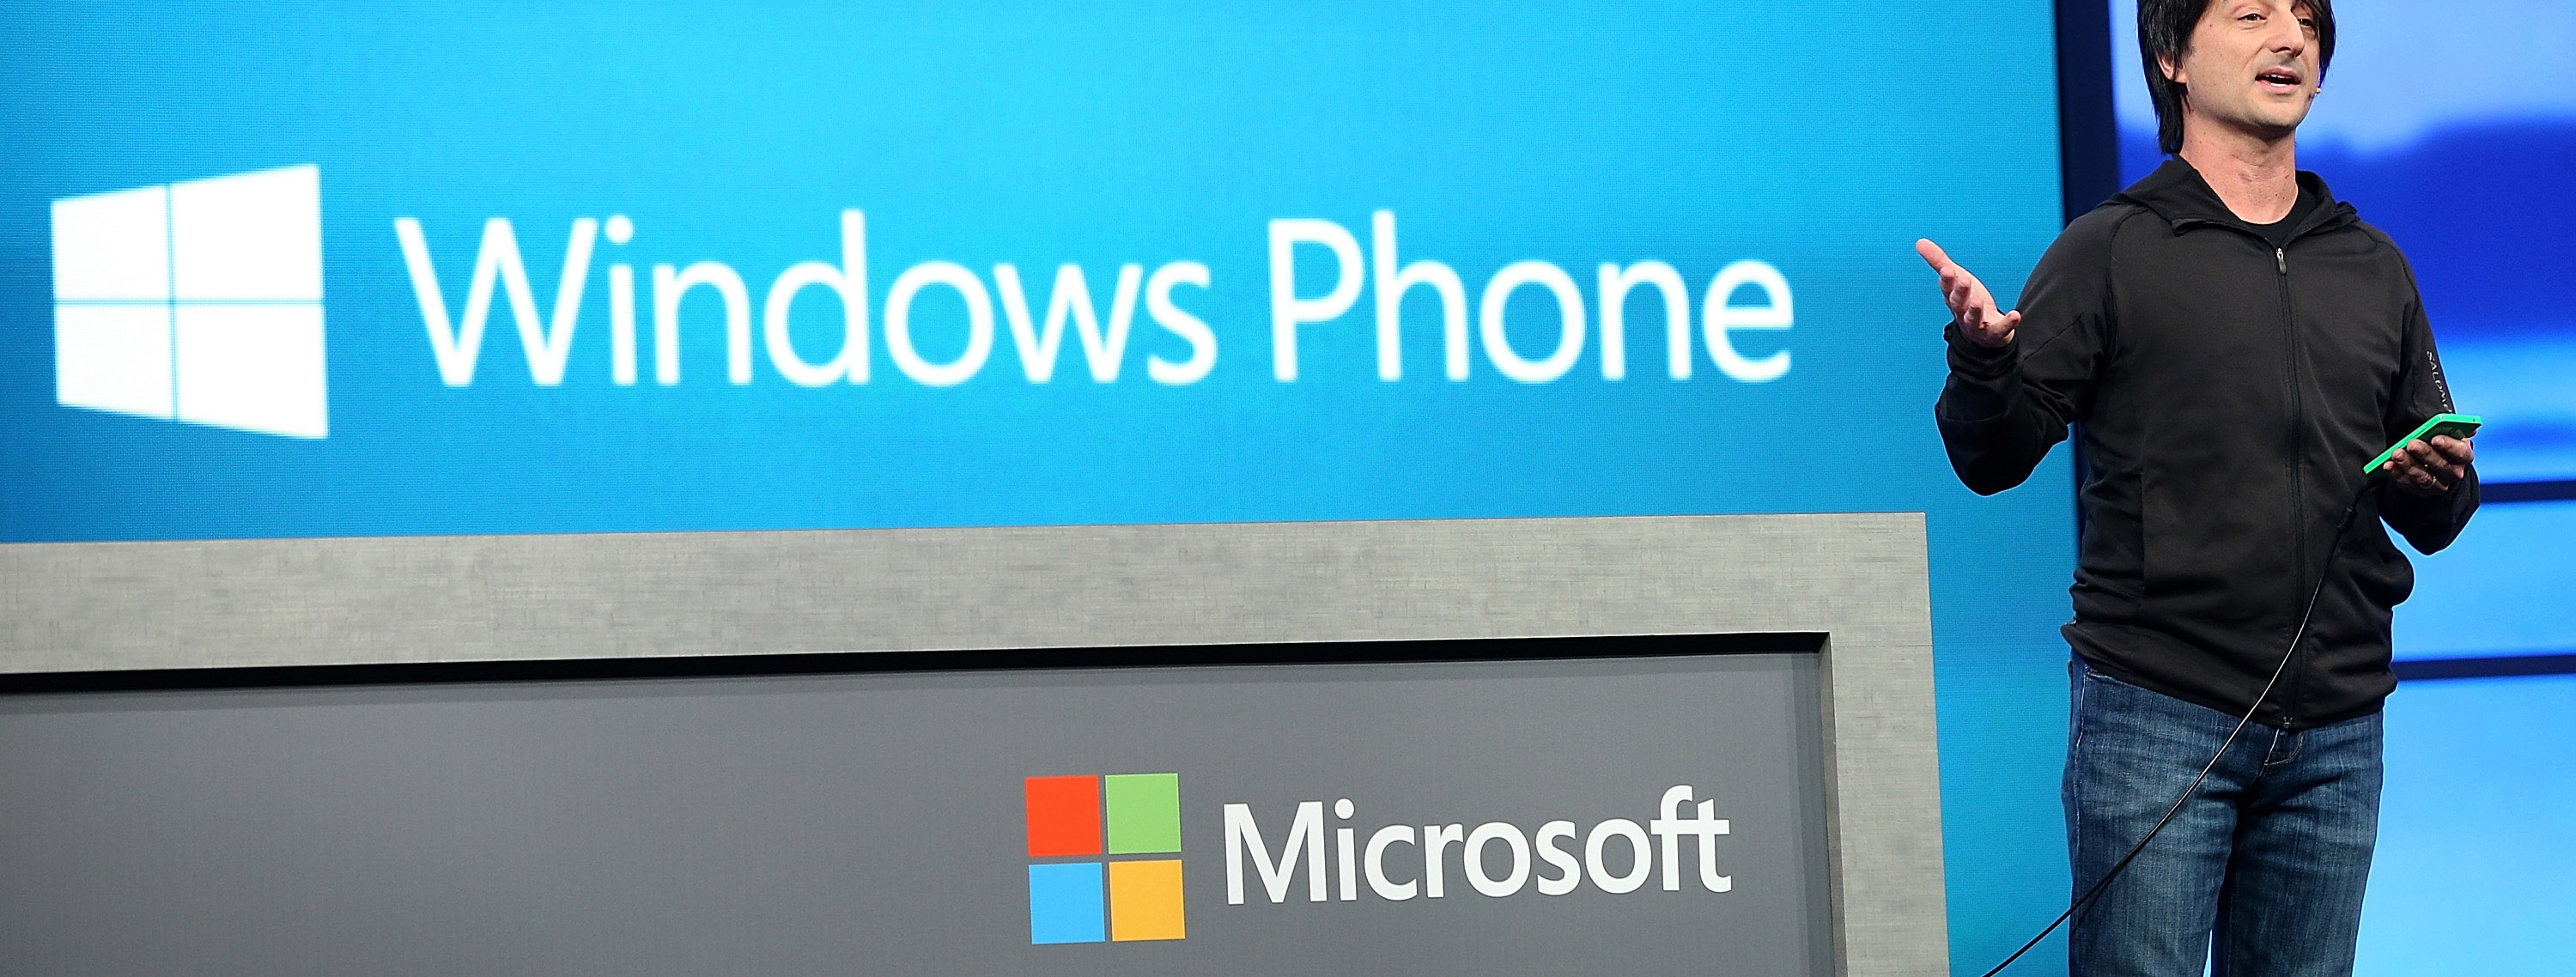 US, India and Brazil are top Windows Phone Markets: Report